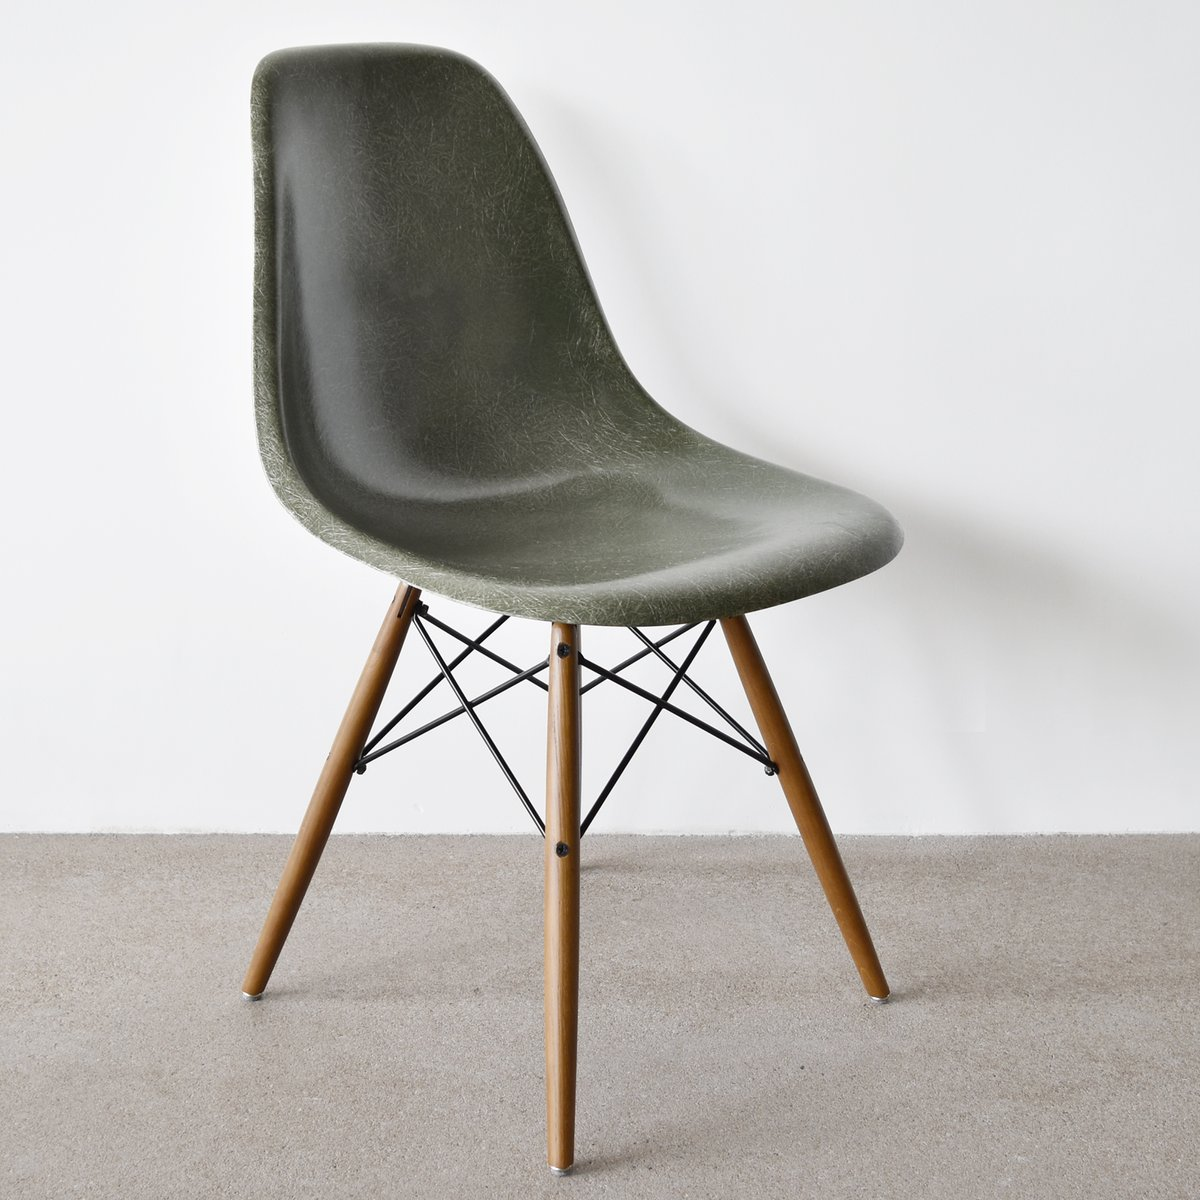 olive green dsw chair by charles and ray eames for herman miller for